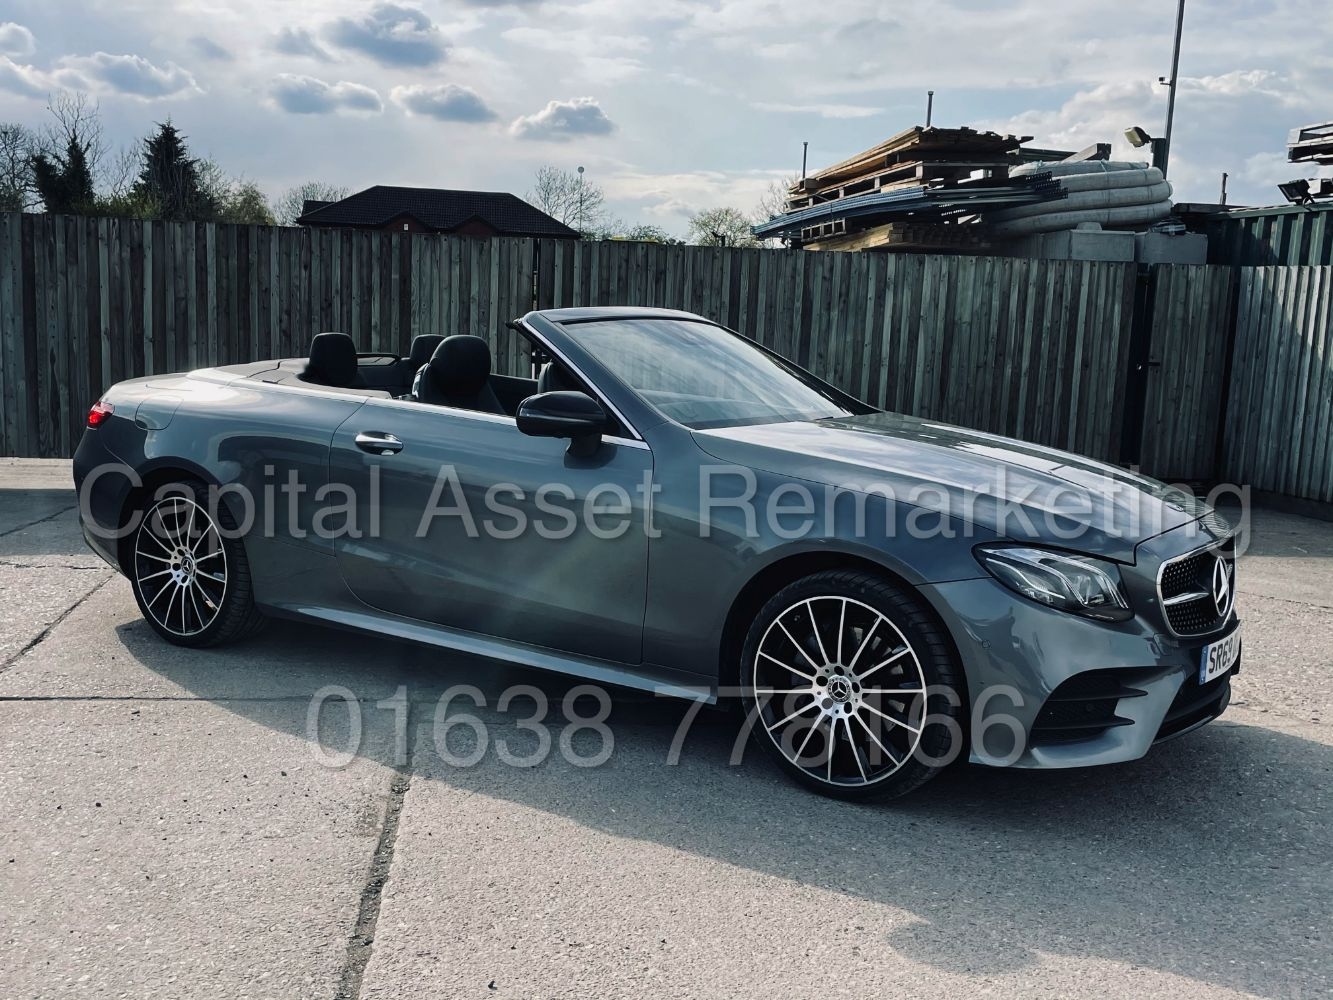 2020 Mercedes-Benz E220d 4-MATIC *AMG Premium Plus - Cabriolet* - 2020 Ford Transit Custom *Tourneo - 9 Seater* + Many More: Cars & Commercials